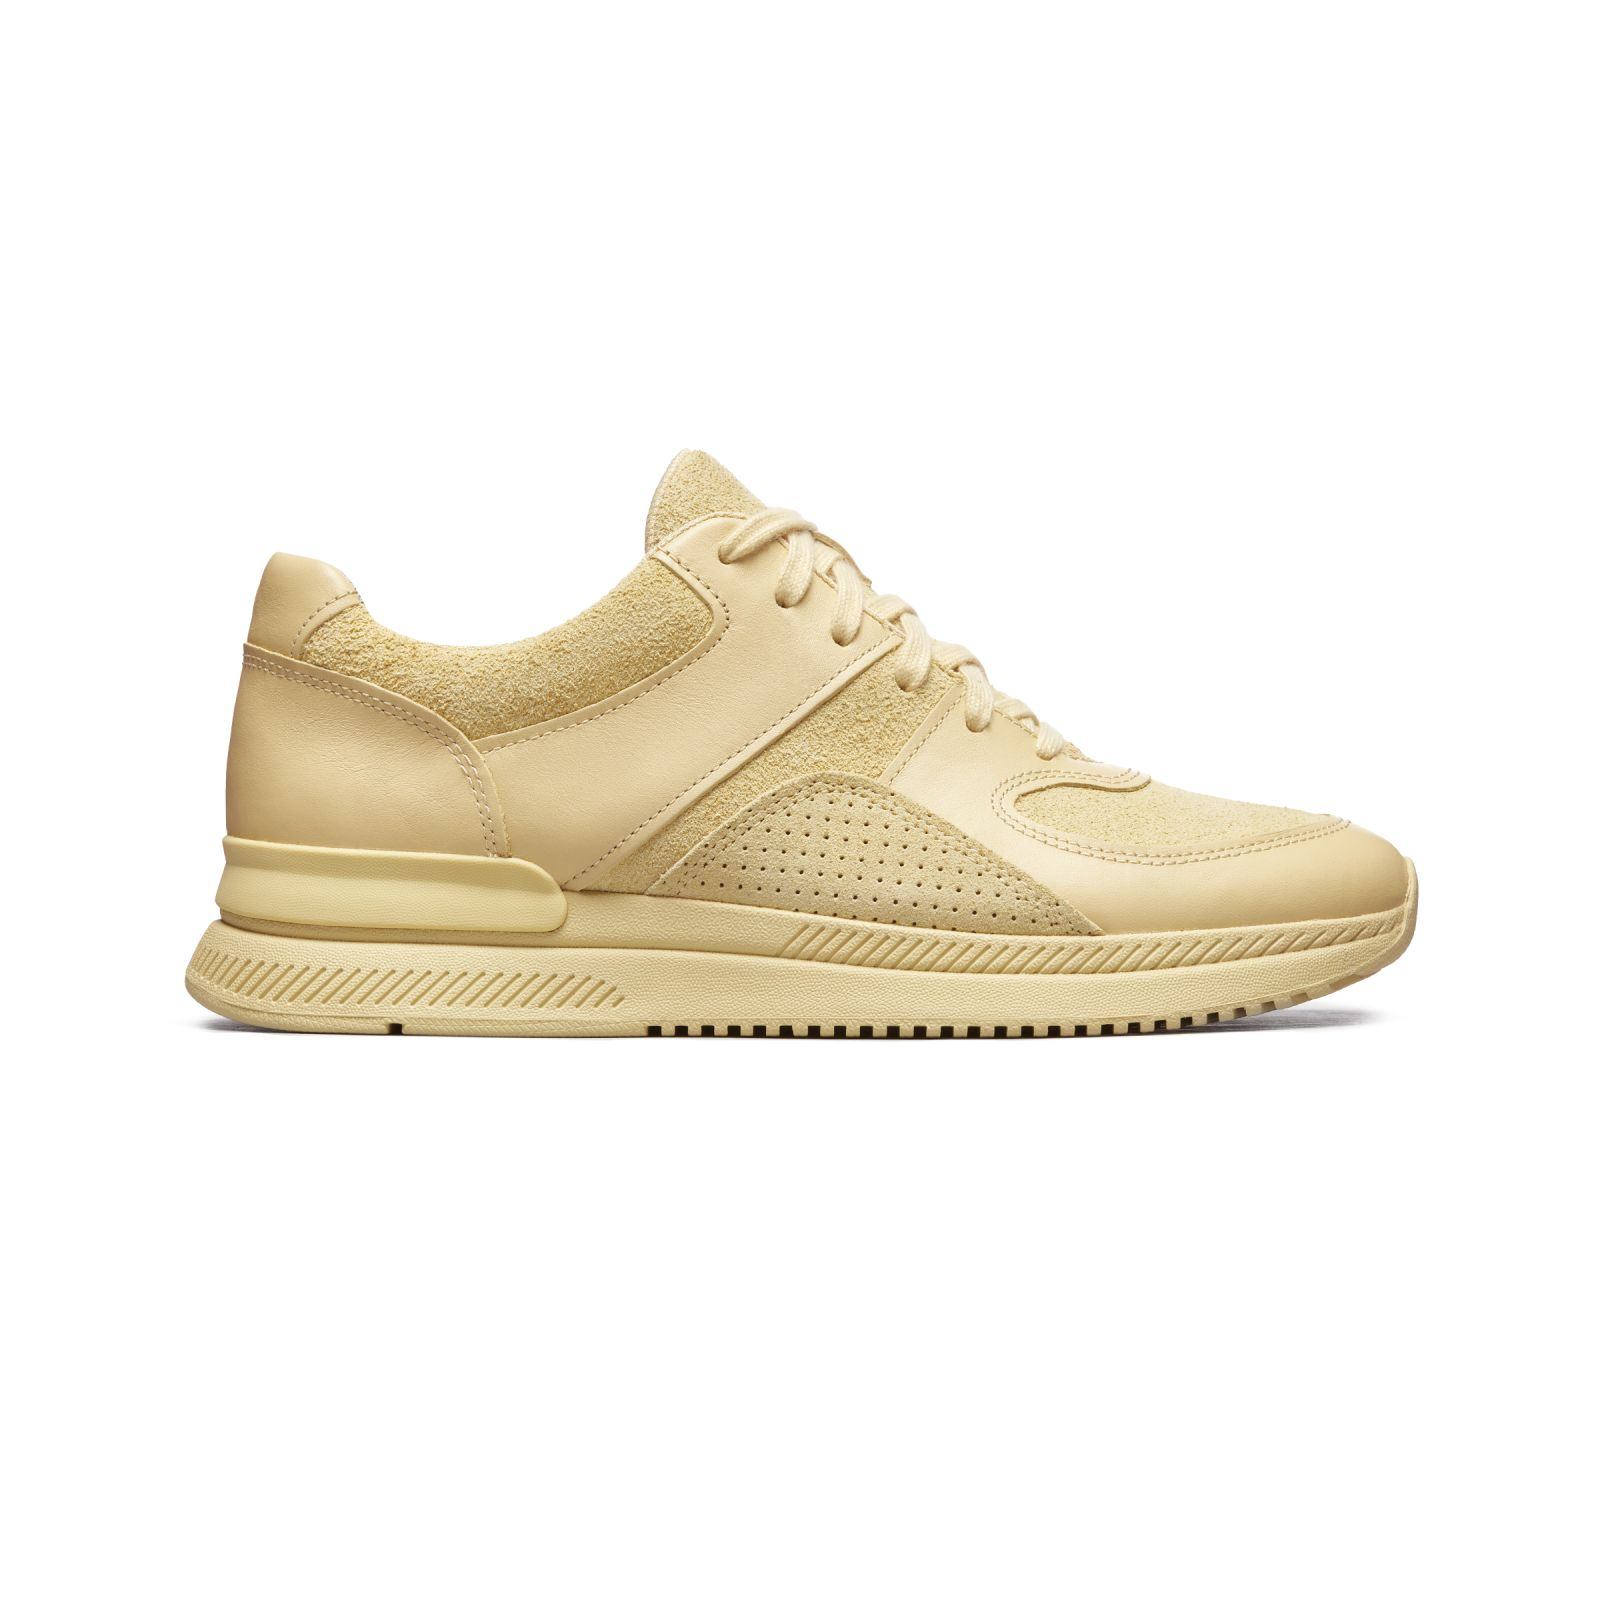 women's trainer by everlane in butter, size w15m13